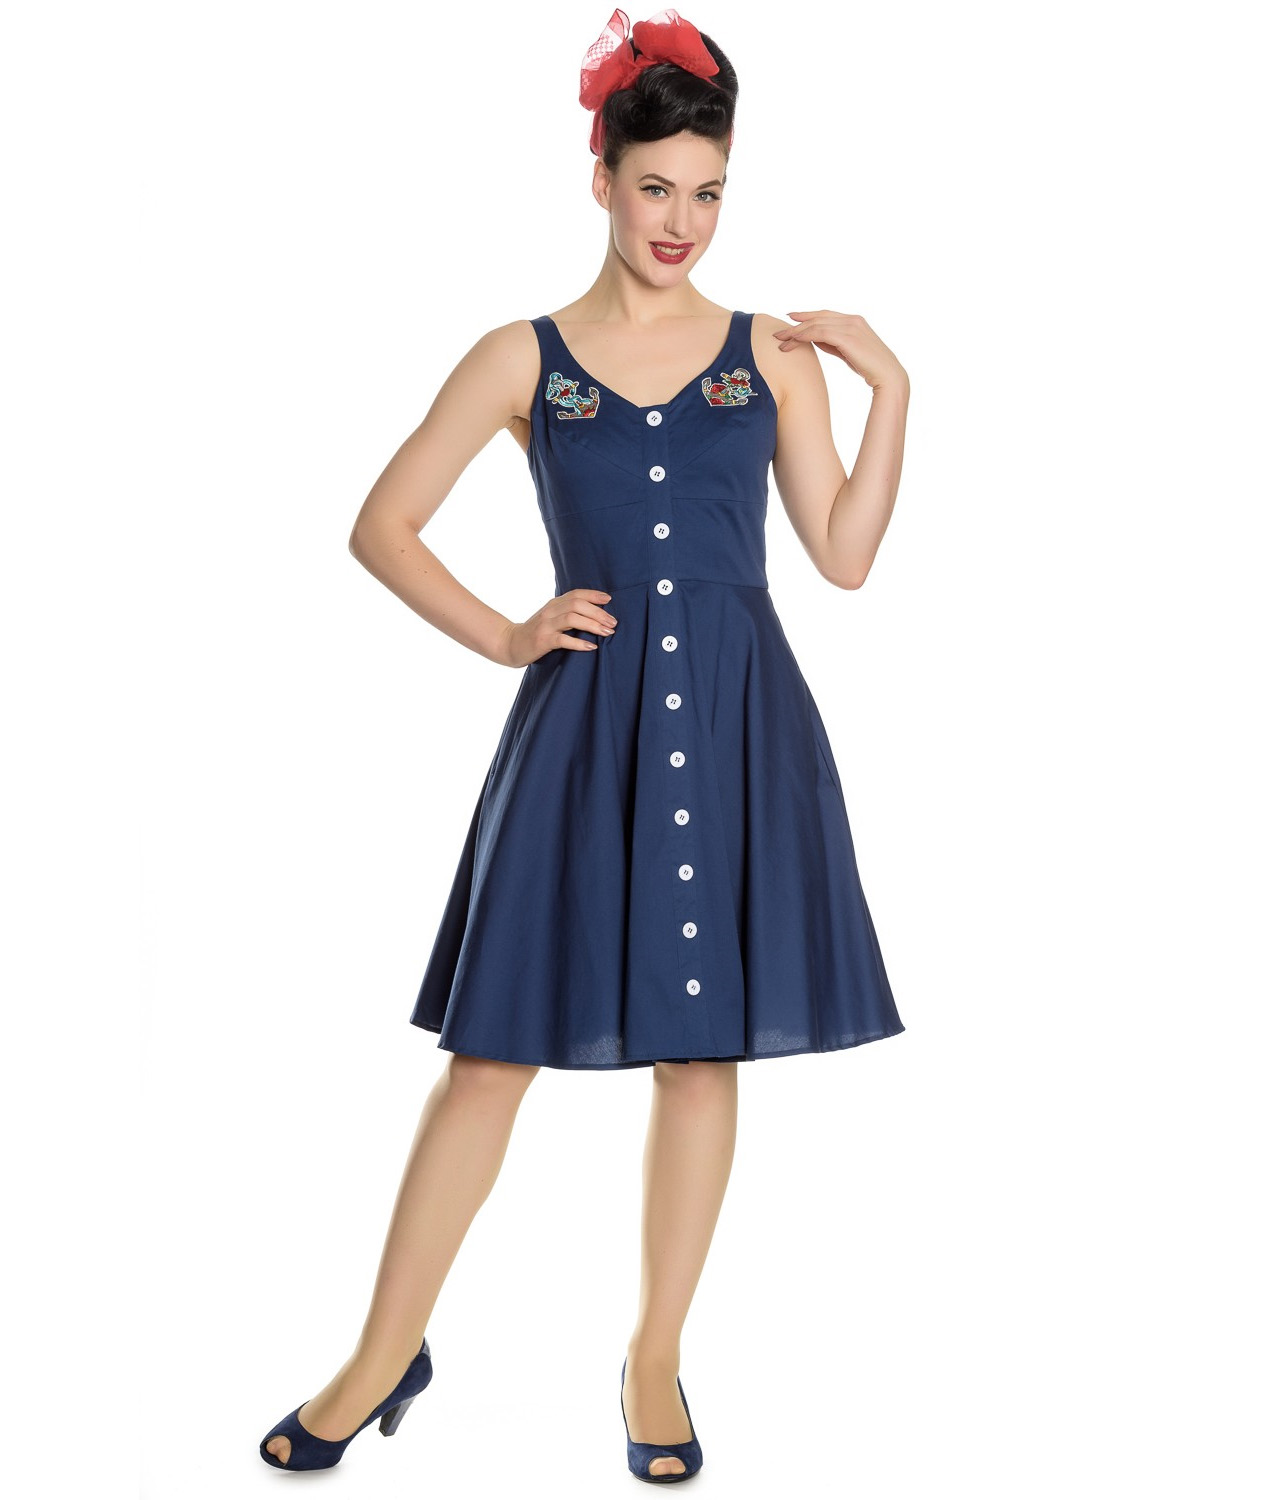 Hell-Bunny-Vintage-50s-Pin-Up-Dress-Navy-Blue-SELA-Nautical-Anchors-All-Sizes thumbnail 7